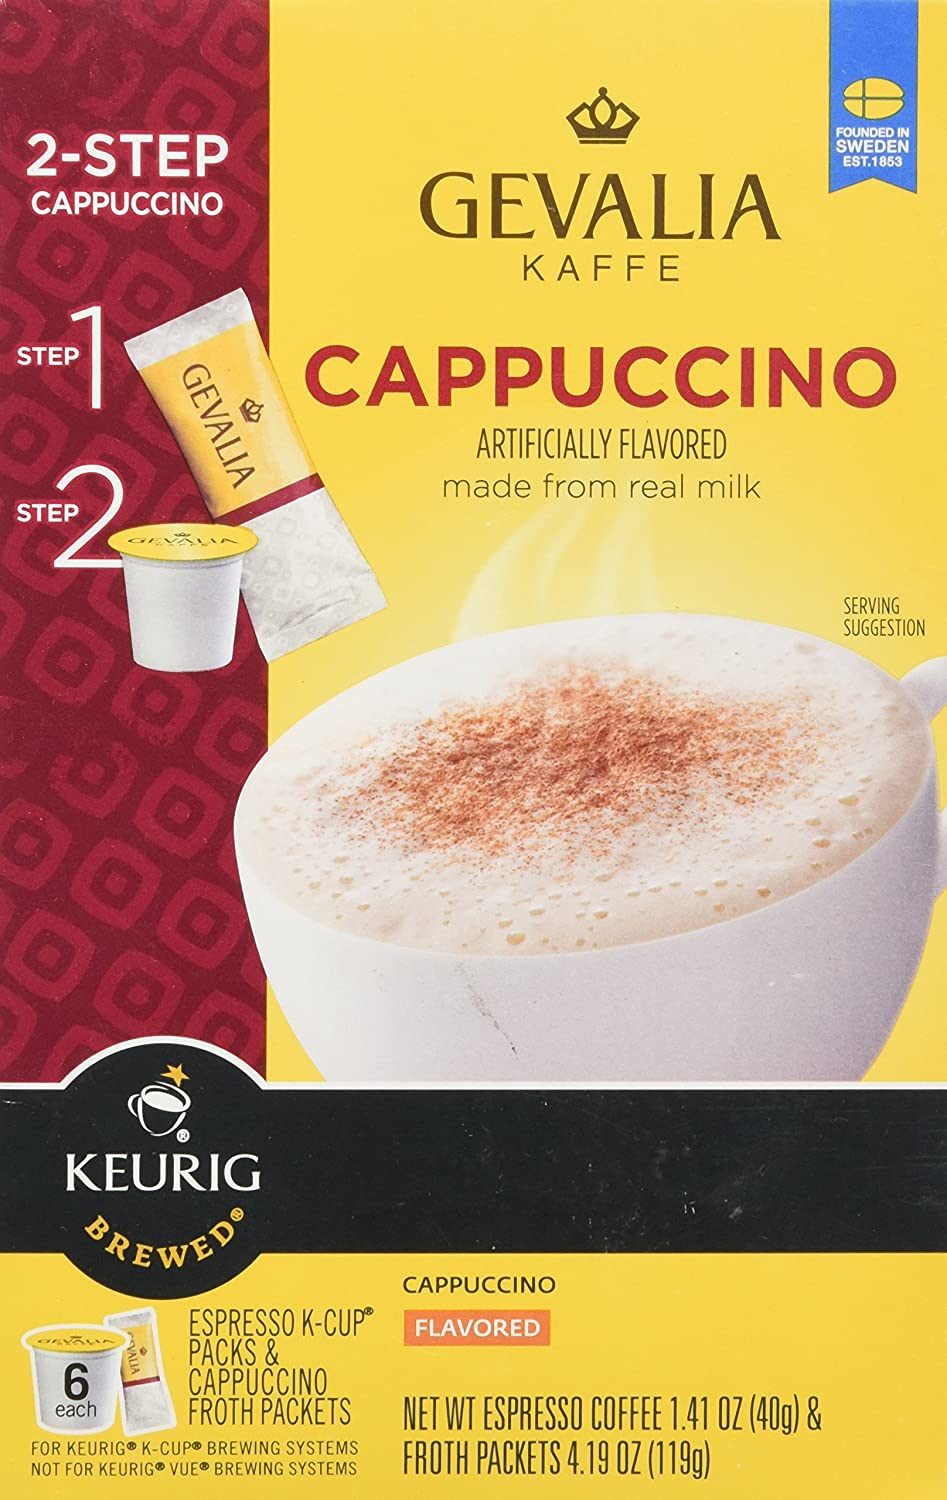 Gevalia Kaffe 2-Step Cappuccino (6 Espresso Coffee Cups & Cappuccino Froth Packets)